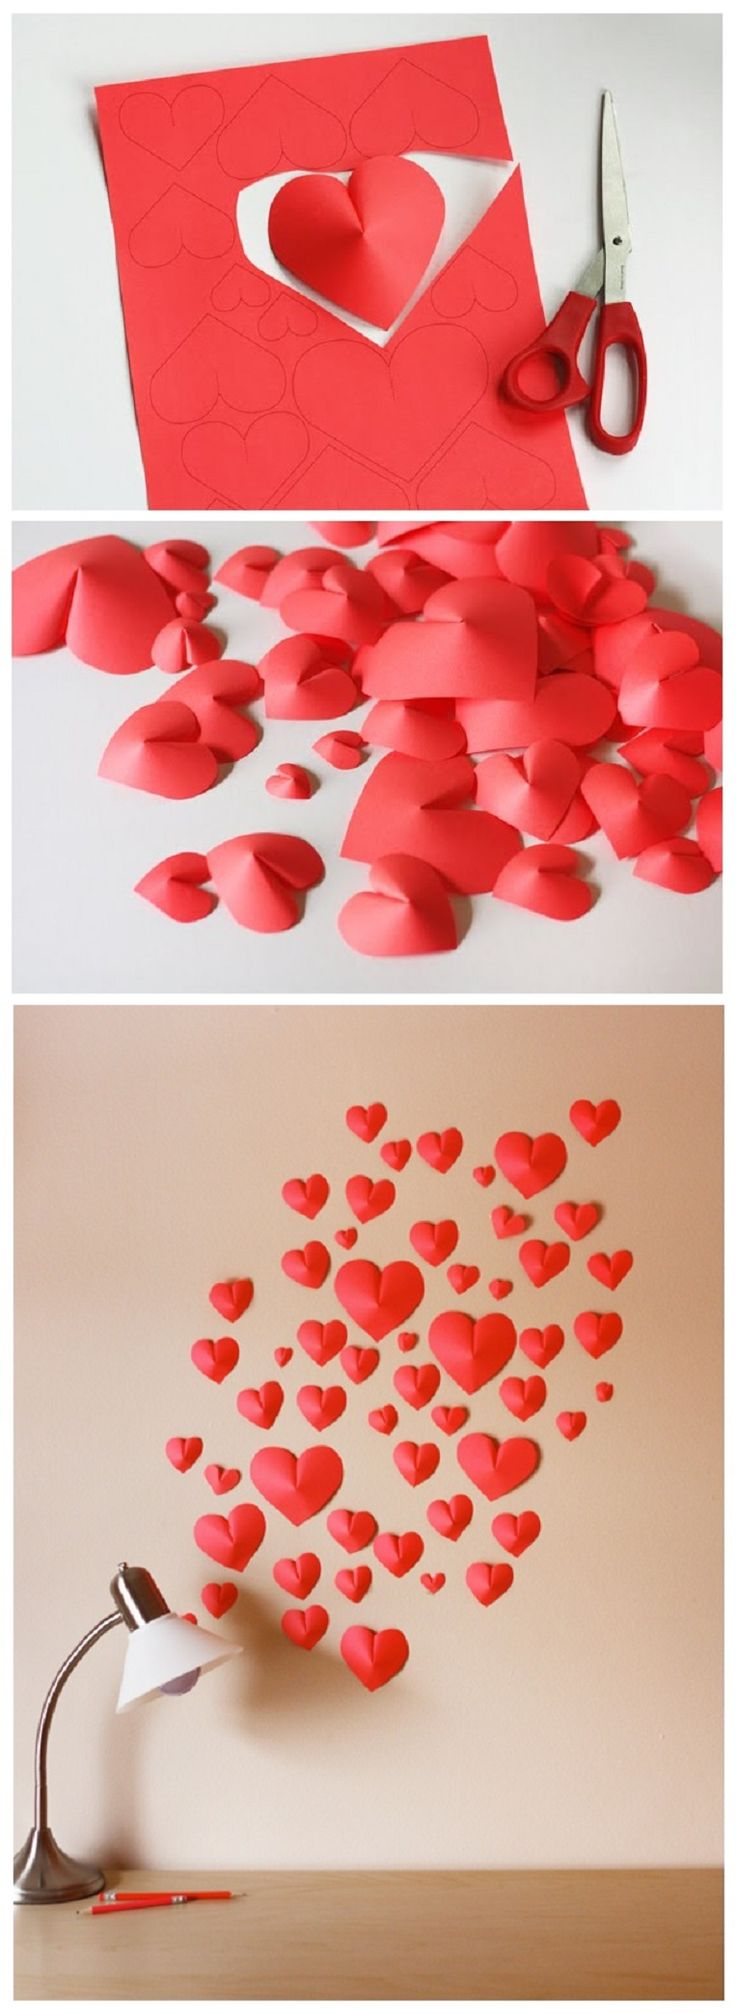 Cool DIY Ideas for Valentines Day | Easy Project Tutorial for Valentine Home Decor and Crafty Decorating | Simple Wall of Paper Hearts